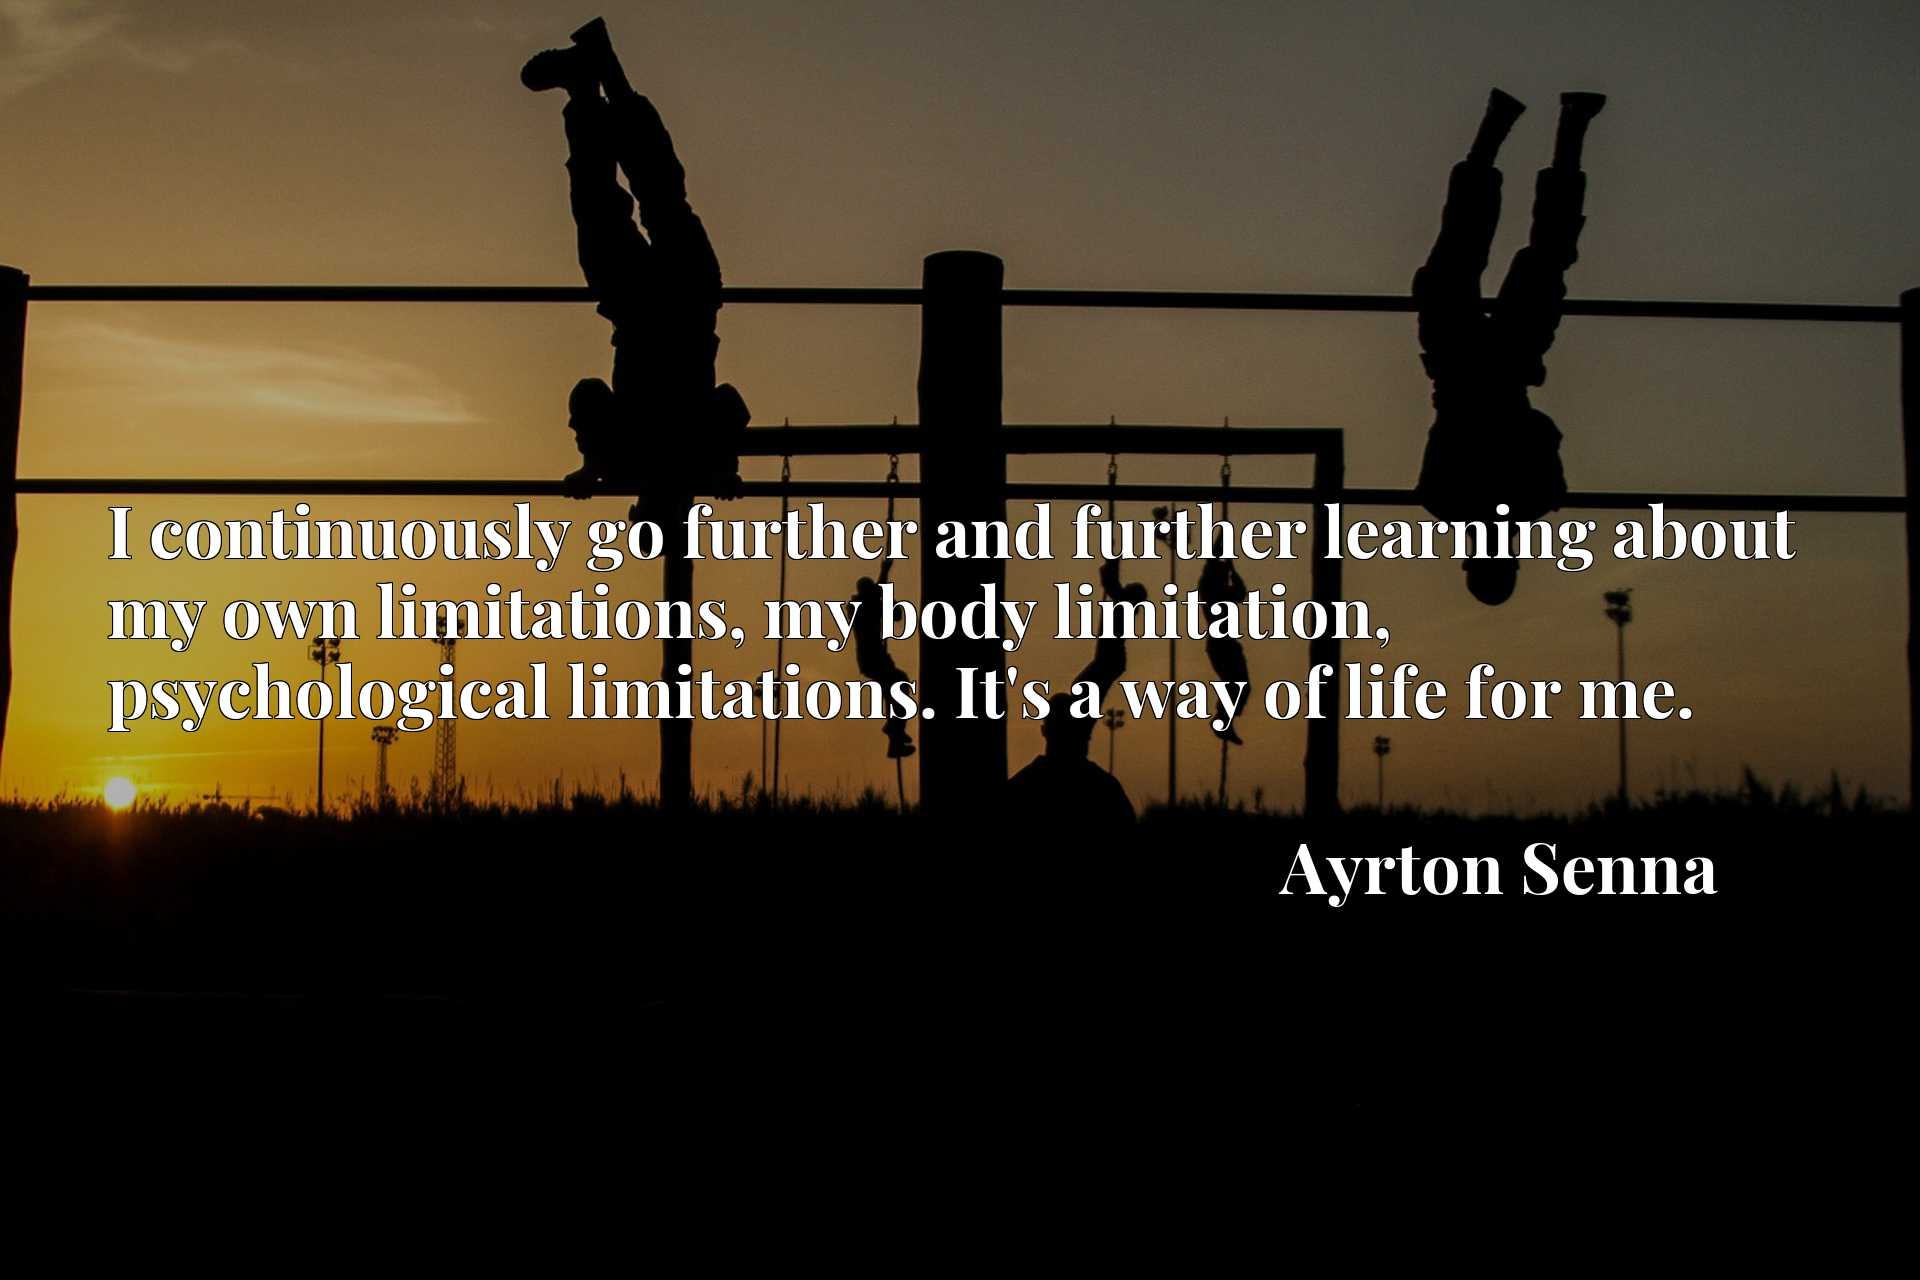 I continuously go further and further learning about my own limitations, my body limitation, psychological limitations. It's a way of life for me.